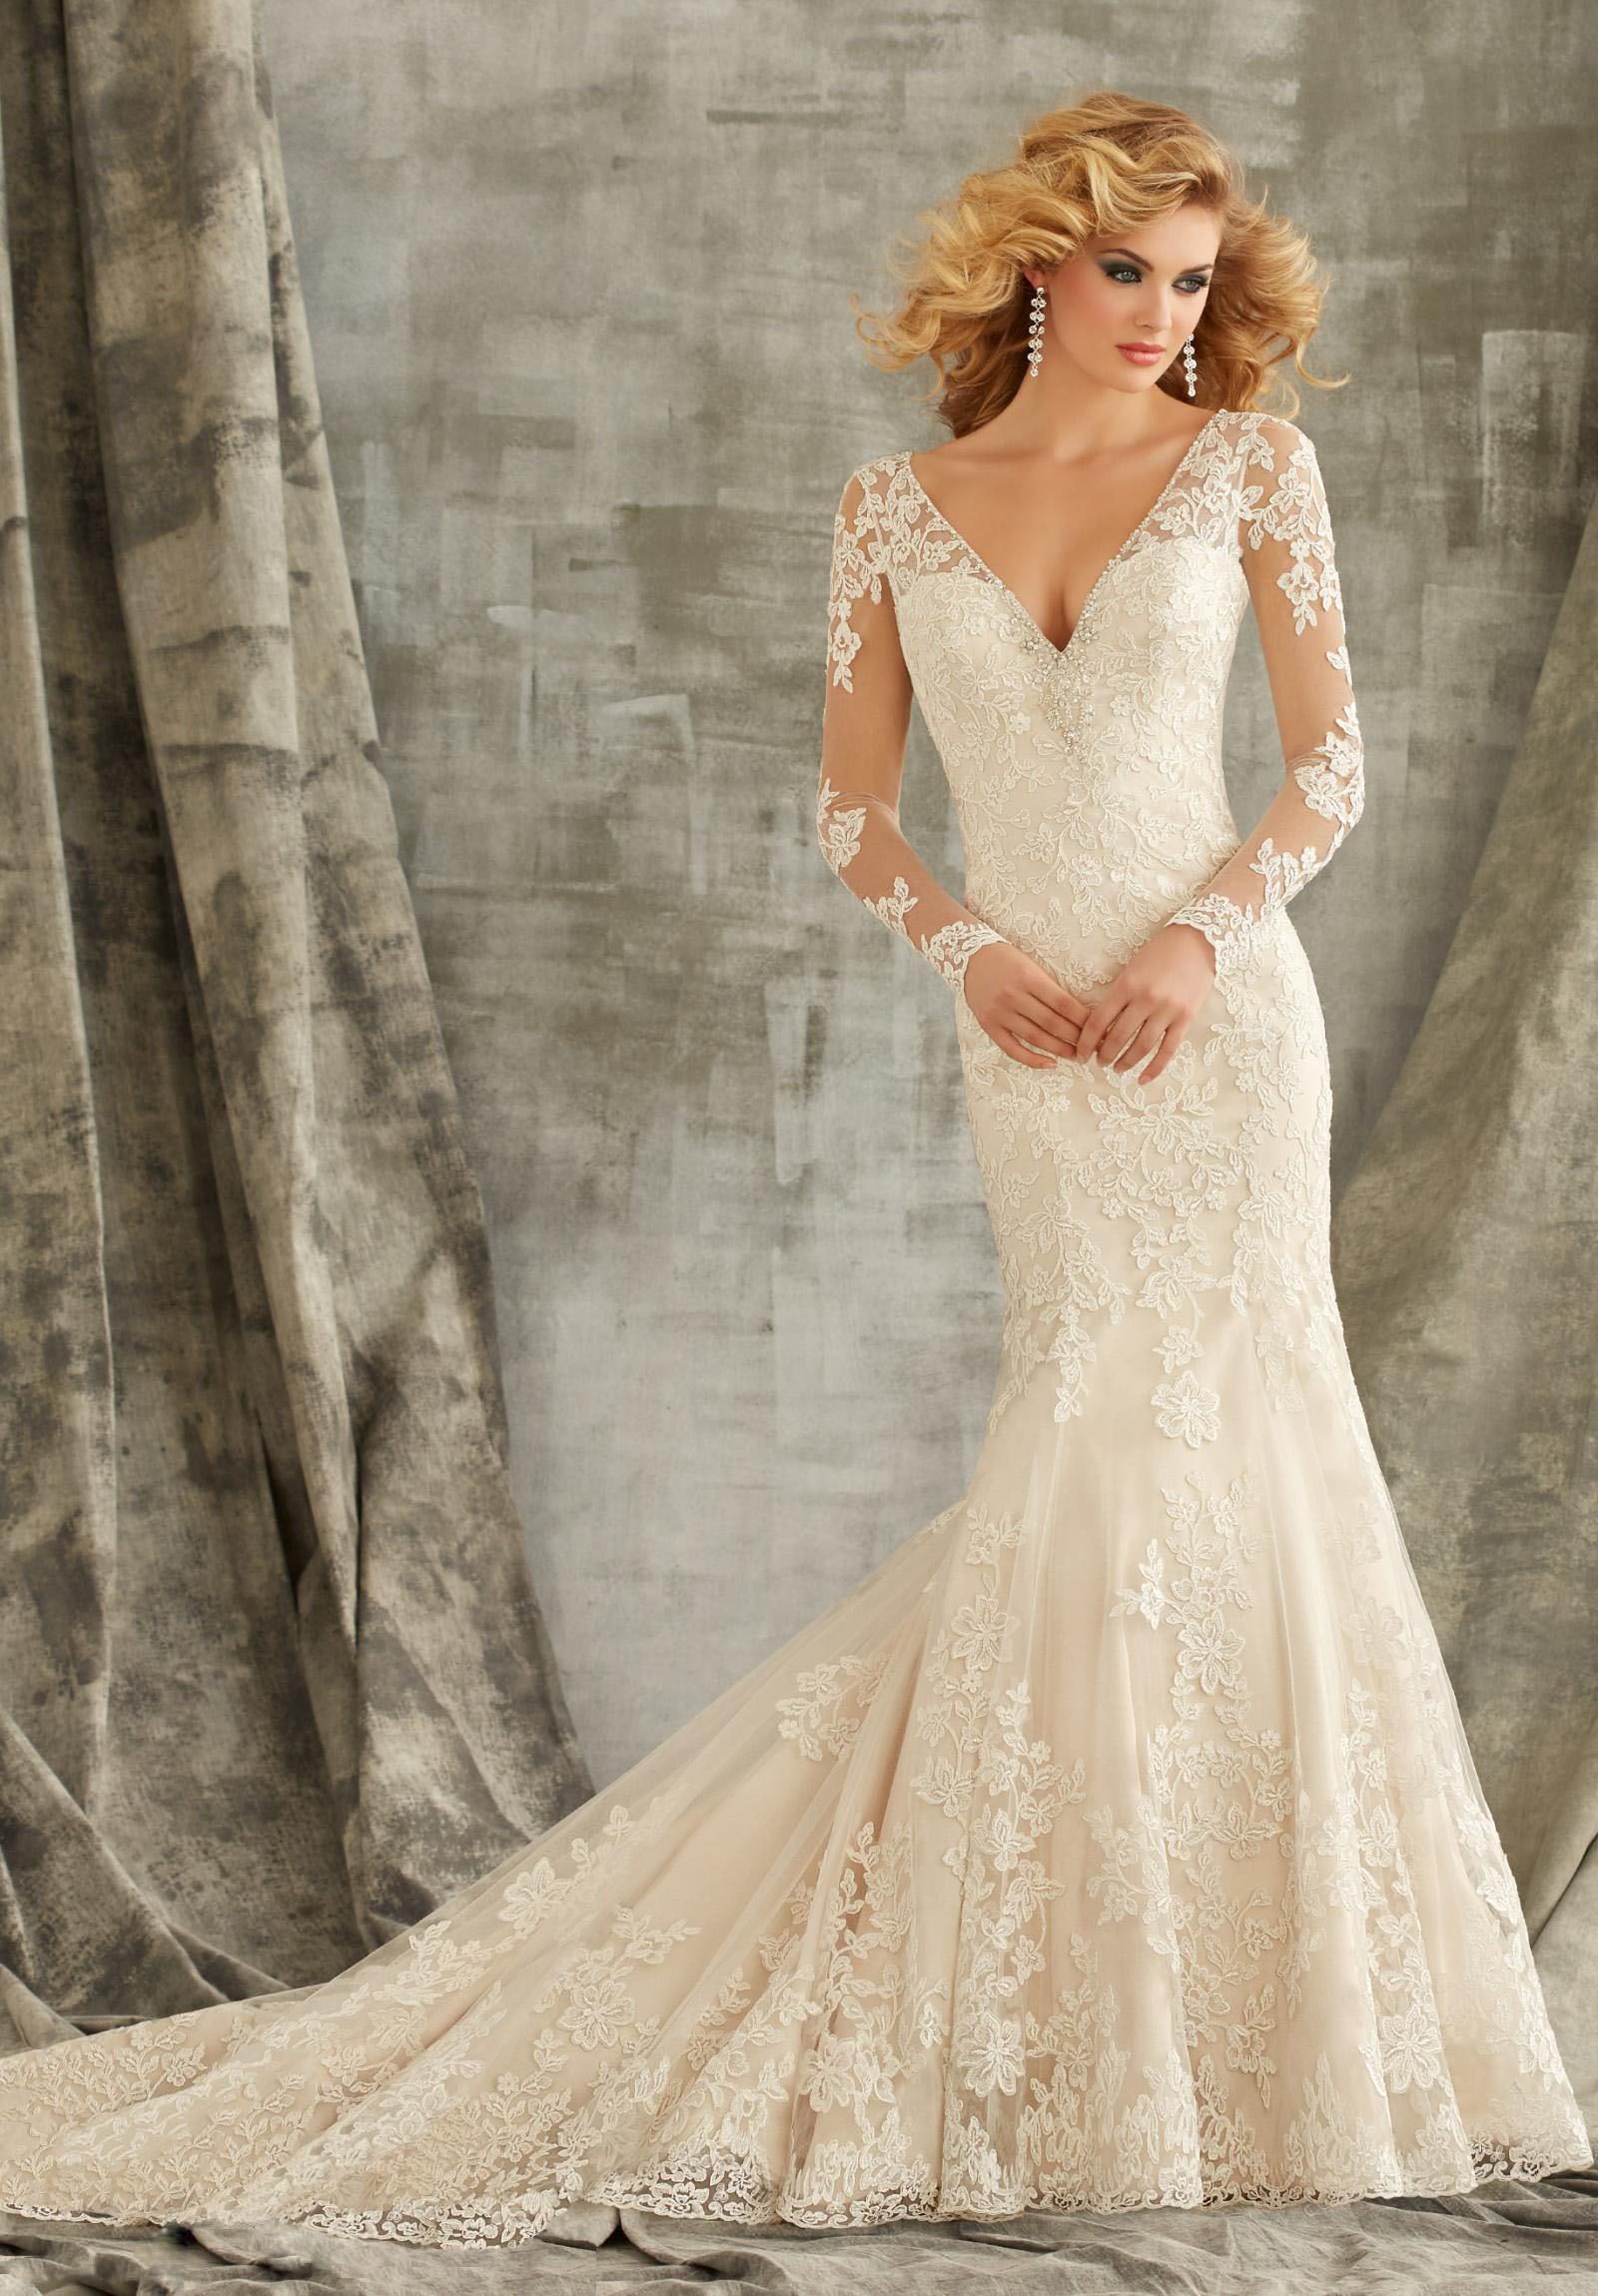 Petite wedding dress tips for our lovely petite girls for Long sleeve dresses to wear to a wedding